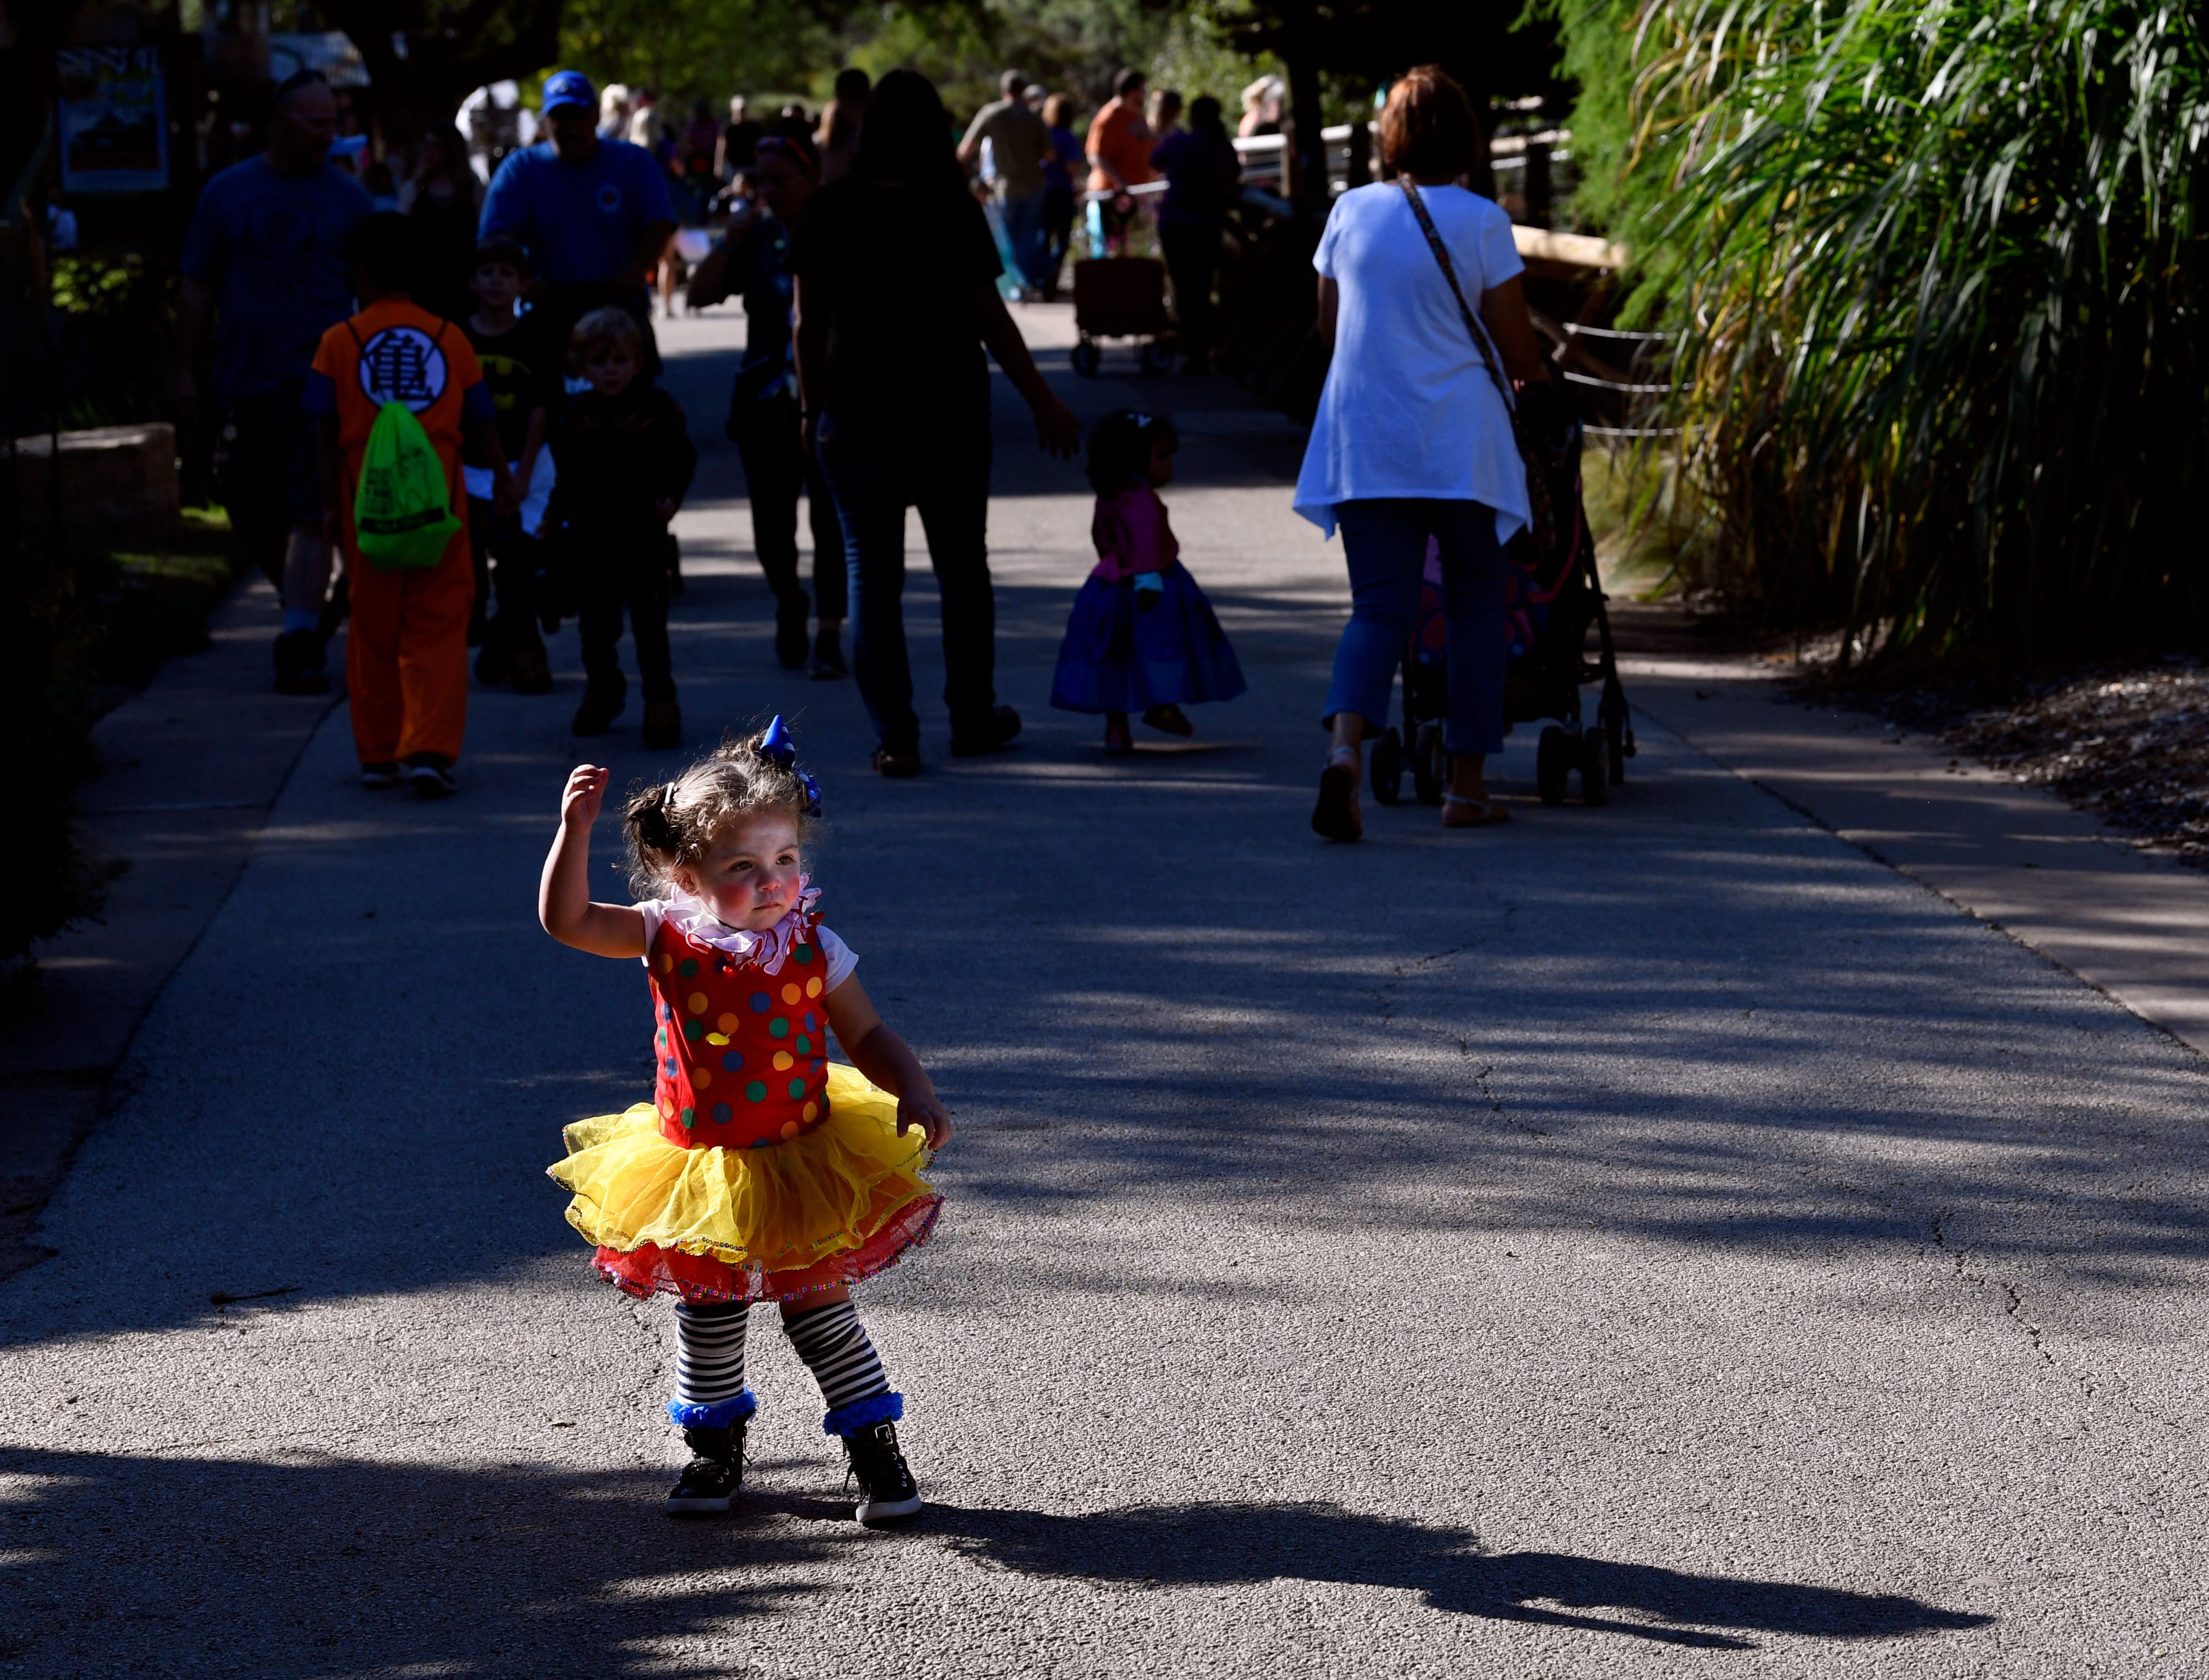 Nola Aldridge, almost 2 years old, stops momentarily to strike a pose in her clown costume Saturday during Boo at the Zoo. The Halloween tradition is the Abilene Zoo's biggest fundraiser of the year.